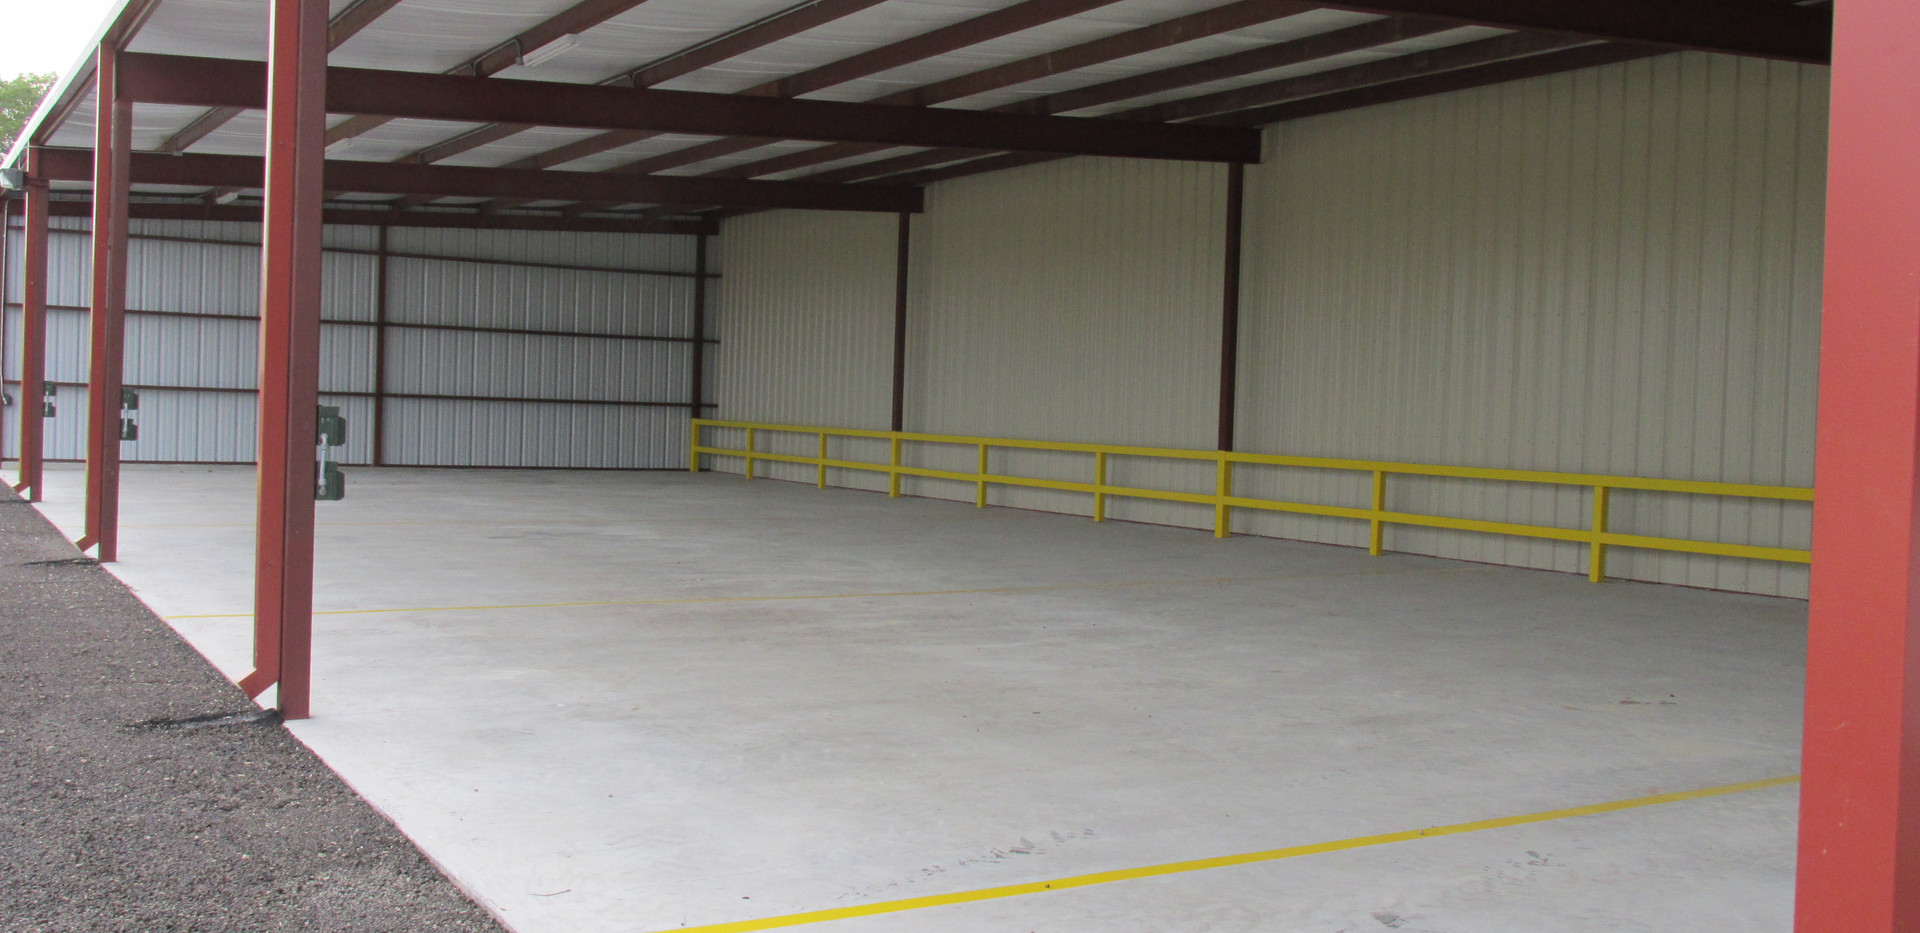 self storage covered parking pic 2.JPG